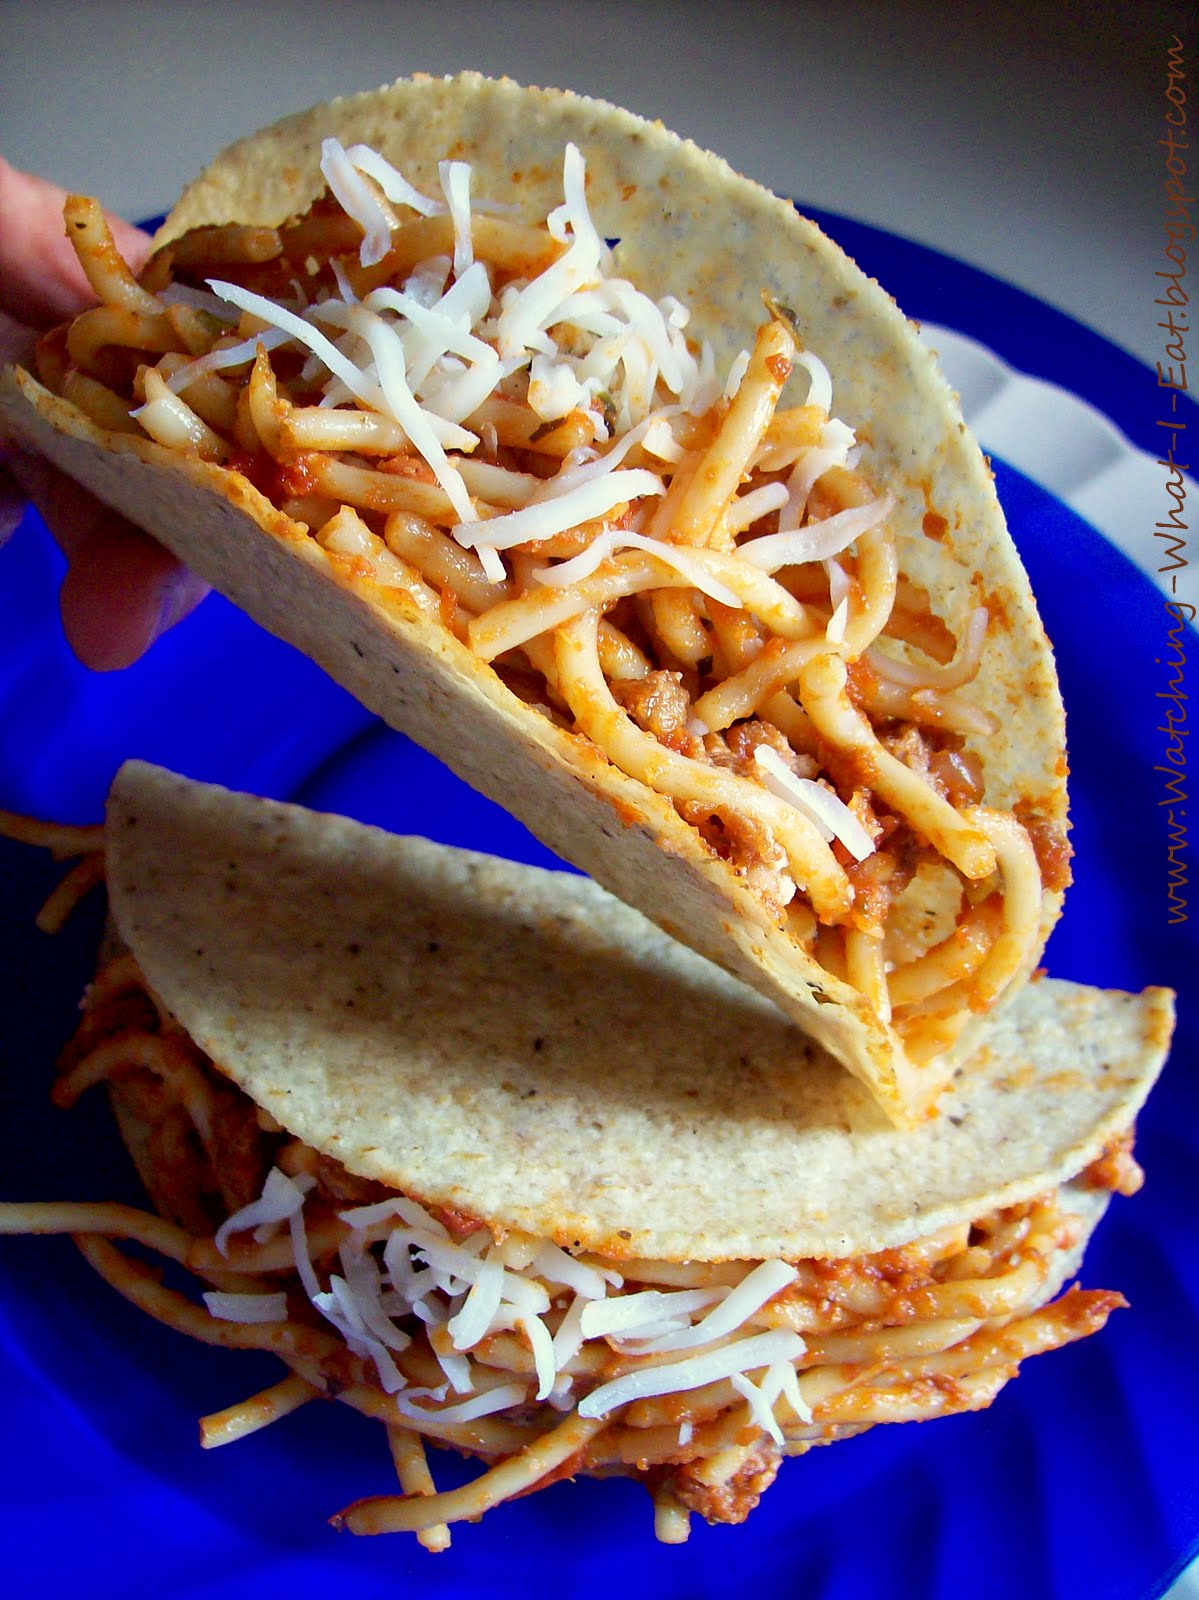 Watching What I Eat Spaghetti Tacos Spaghetti Nachos Ikidding Around In The Kitchen